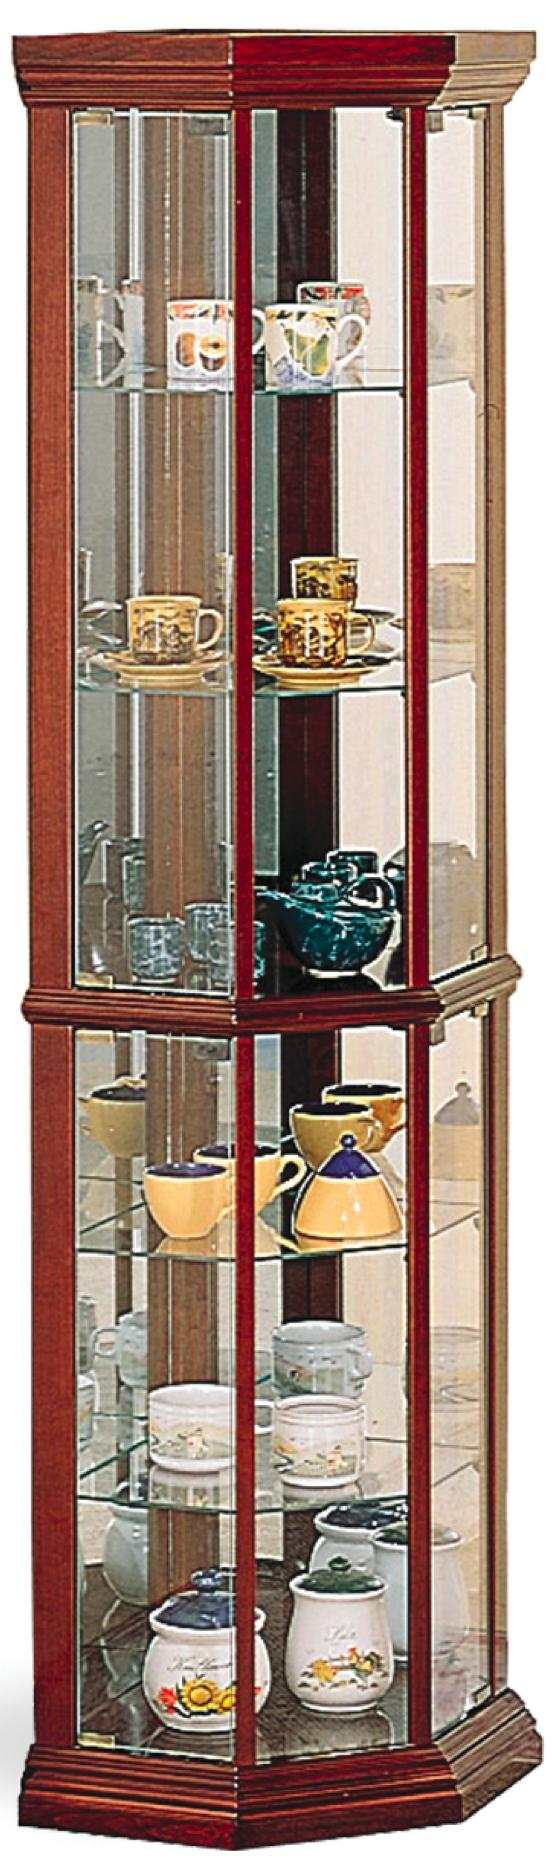 Curio Cabinets Solid Wood Cherry Glass Corner Curio Cabinet With 6